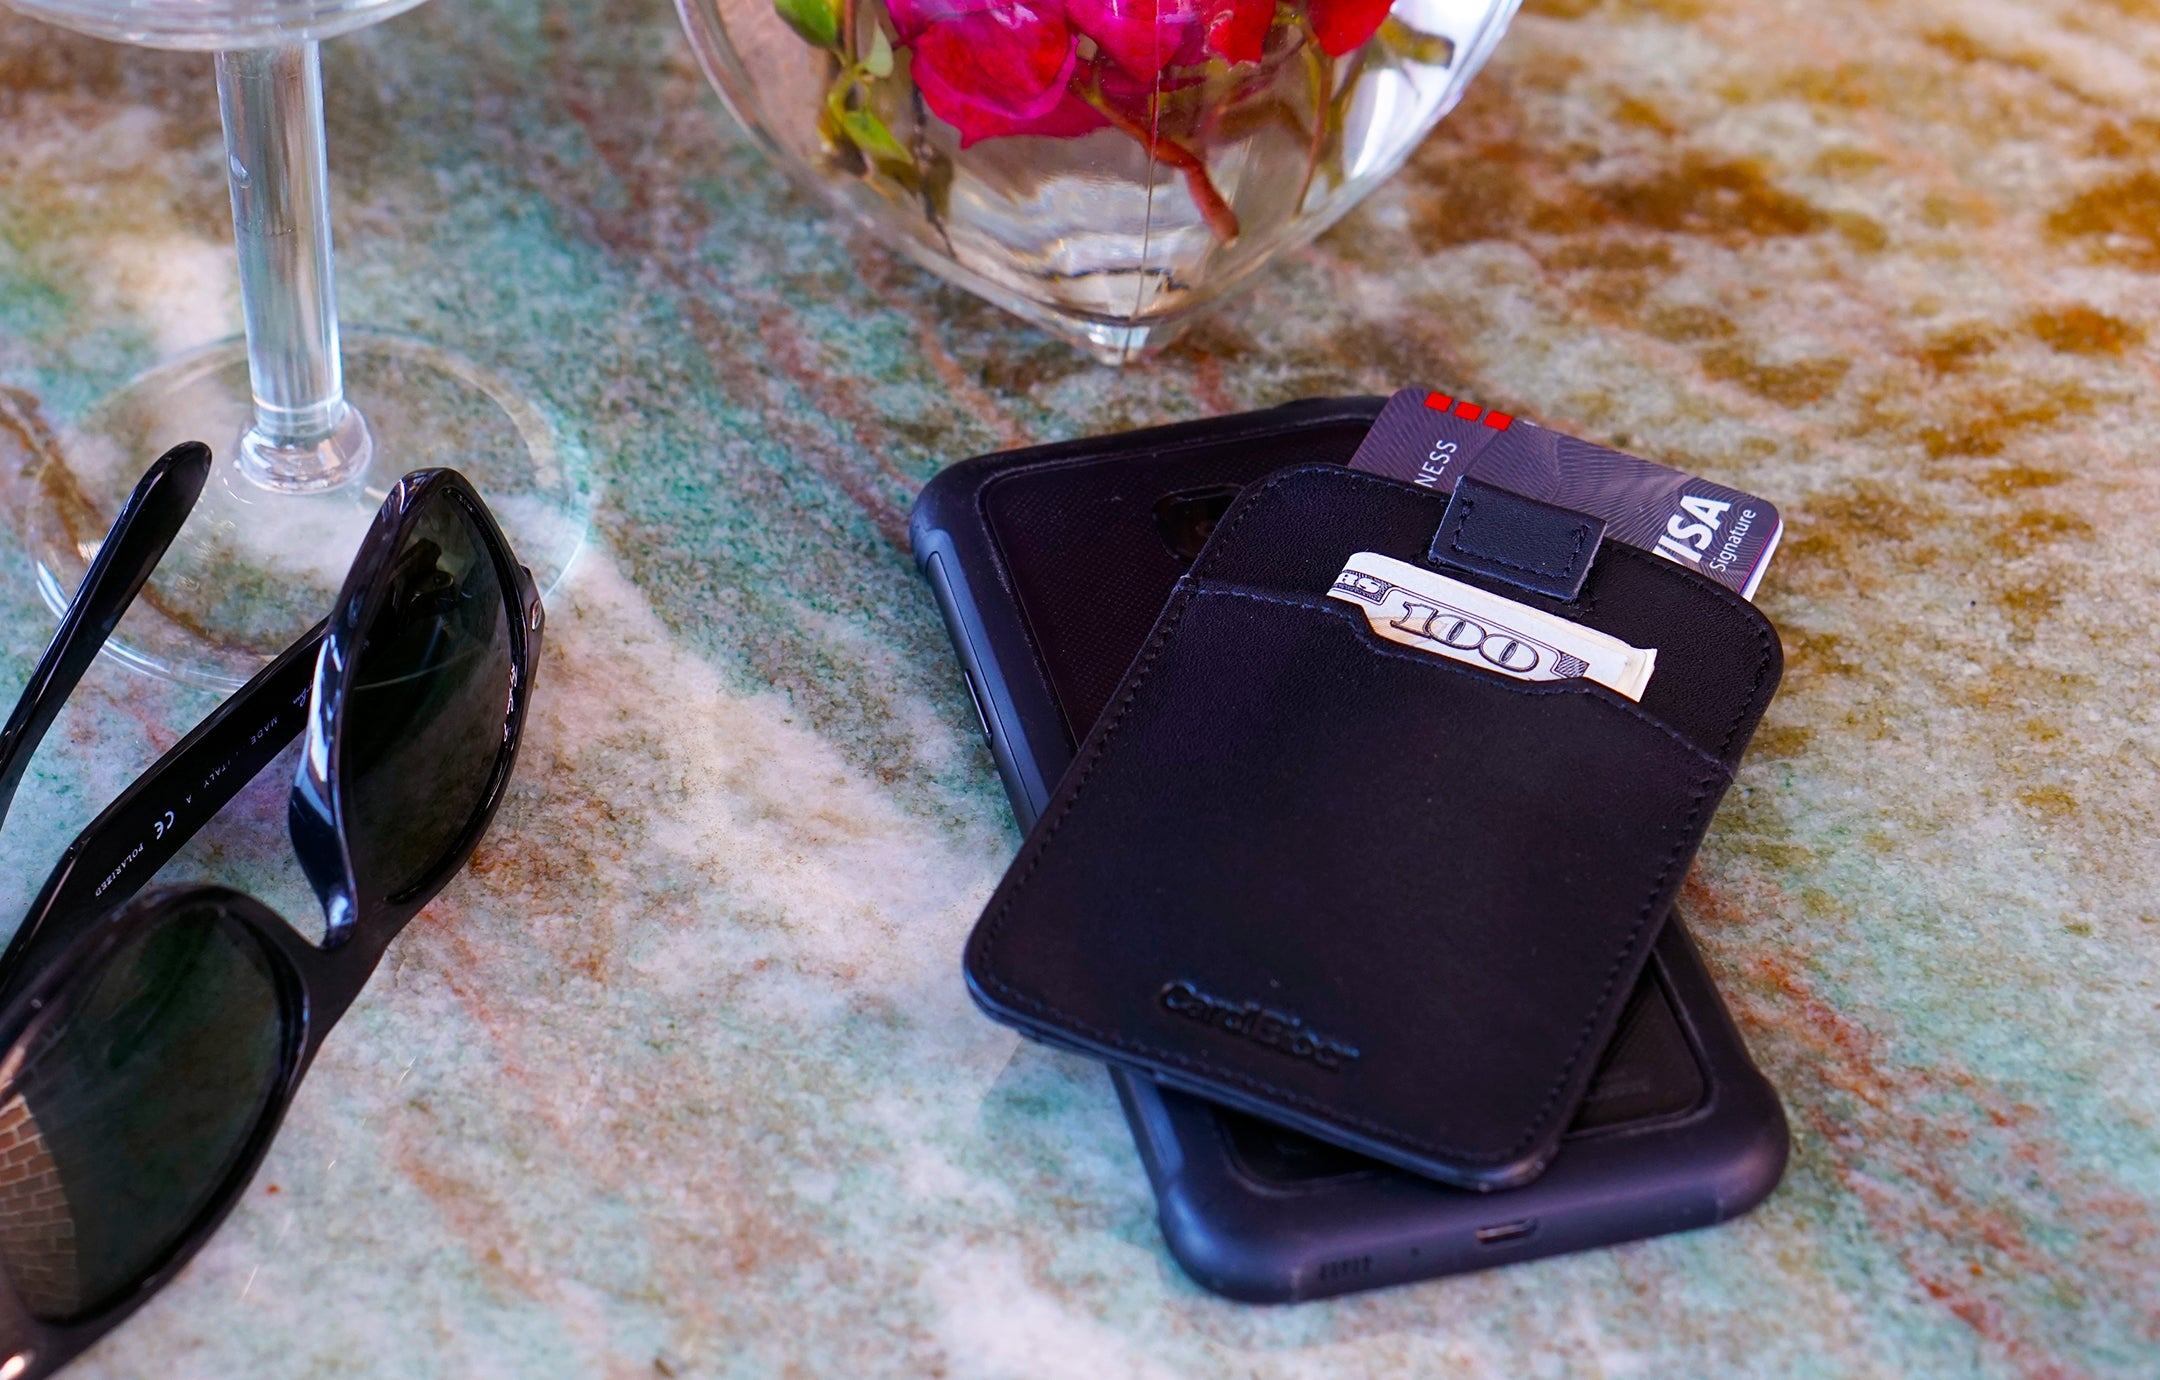 Card Blocr Pull Tab Wallet in Black Leather | RFID Blocking Wallet